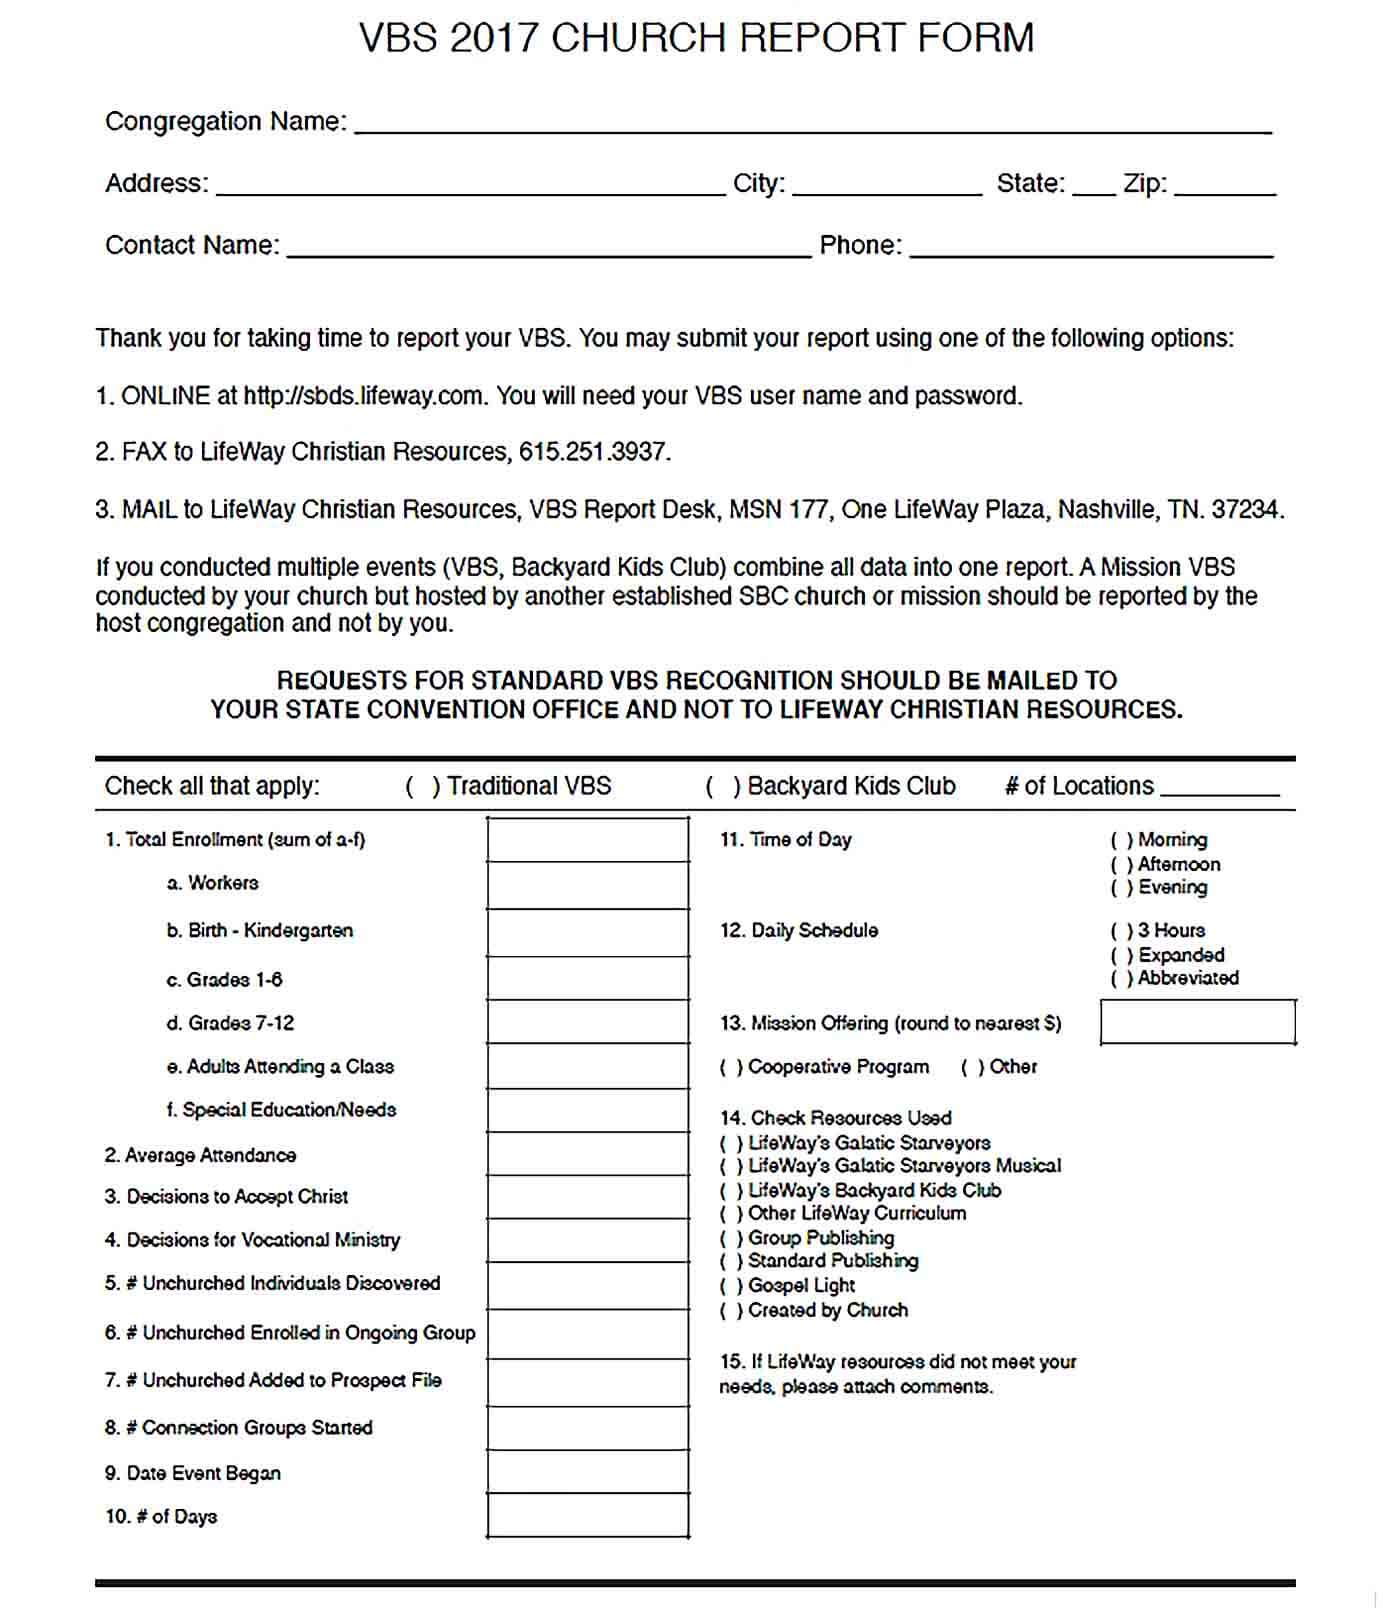 Sample 8. VBS 2017 CHURCH REPORT FORM FOR ADMIN3